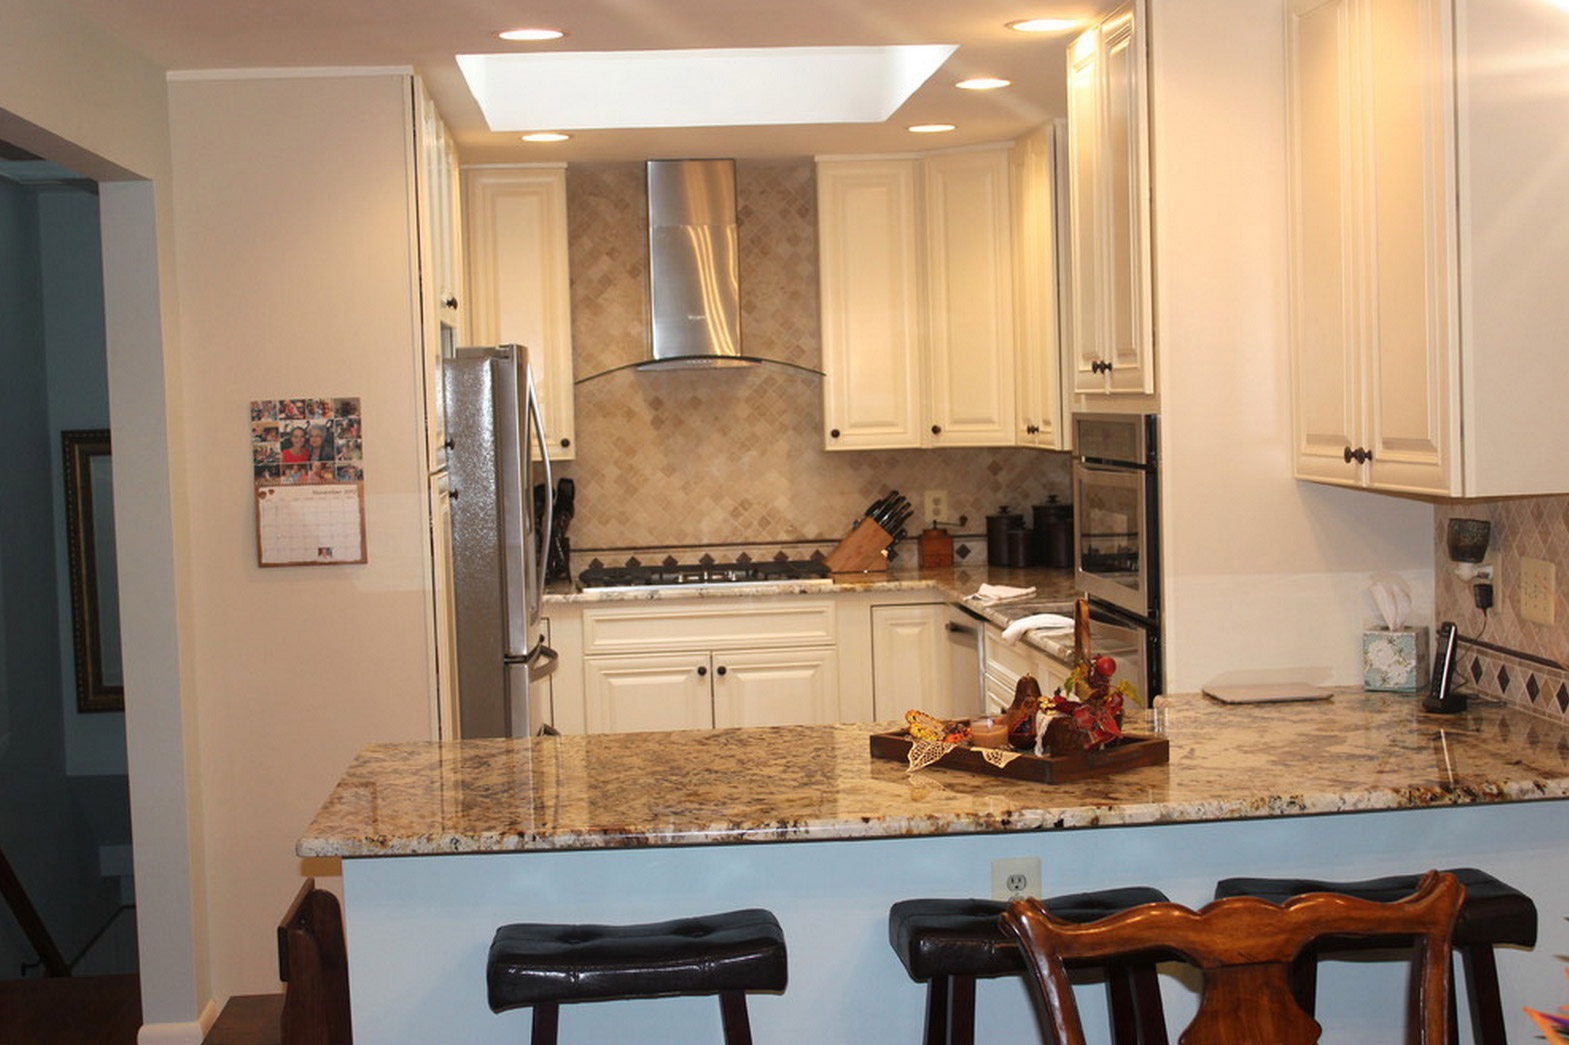 Falls Church Kitchen Remodel Photos